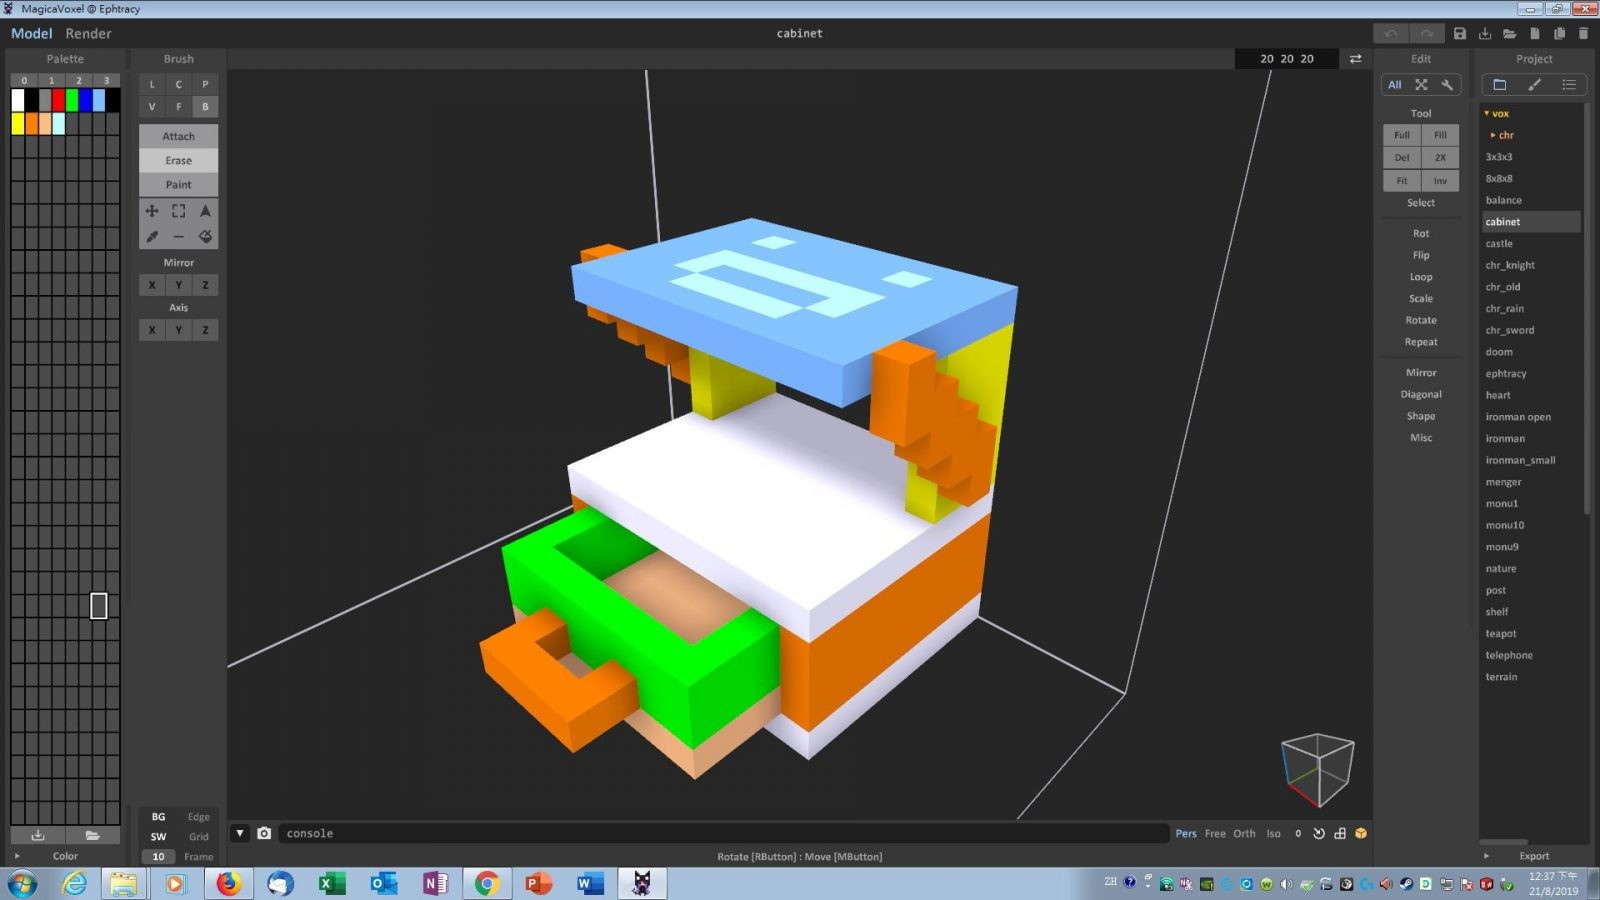 Use Voxel Editor to design cabinet